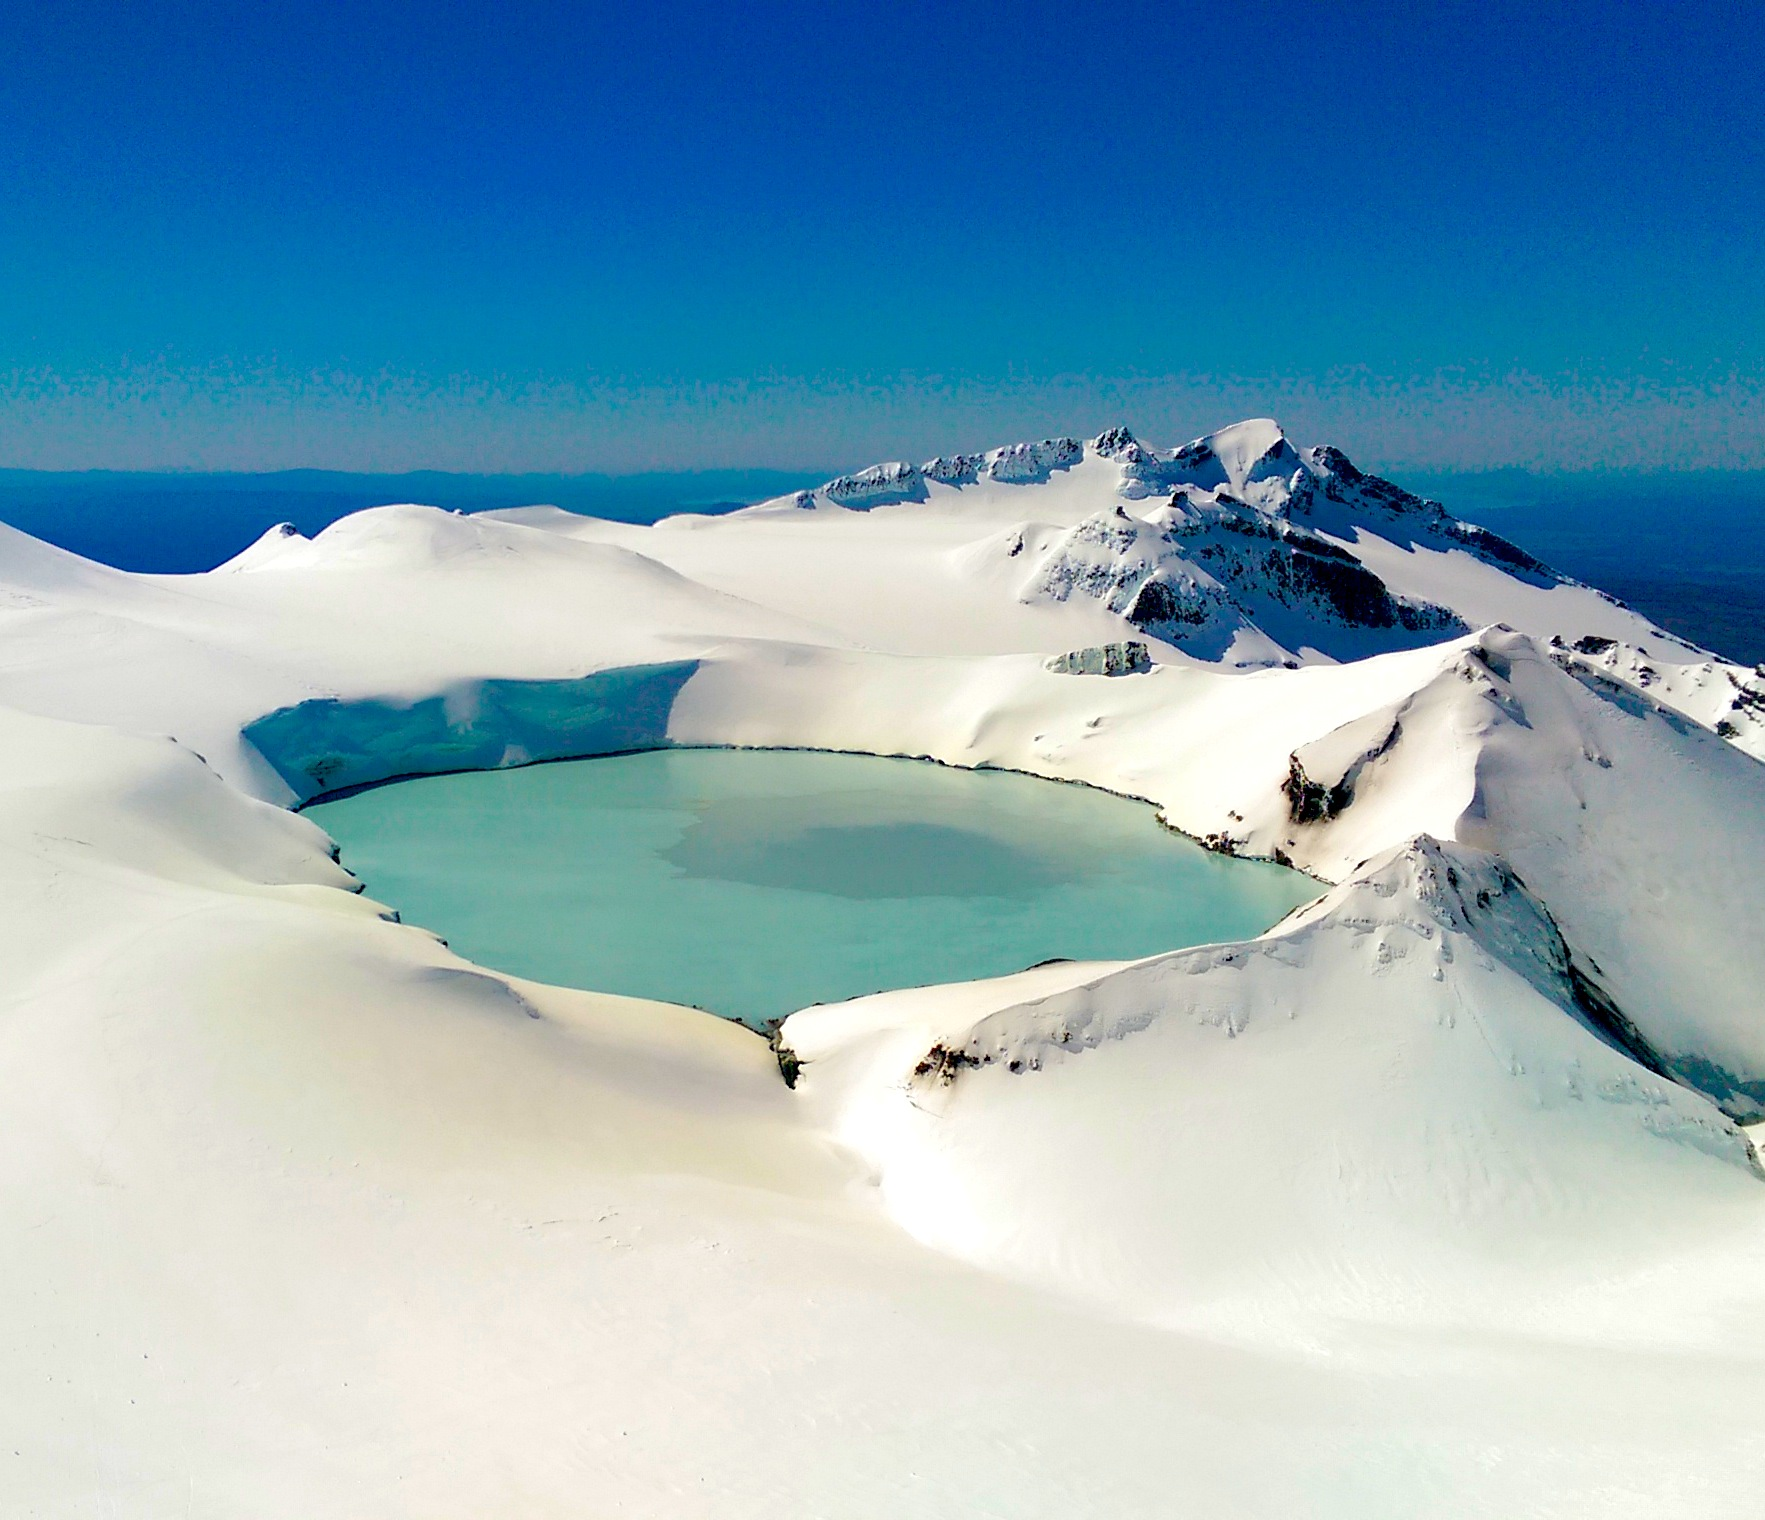 The Stunning Crater Lake at the top of Mt. Ruapehu